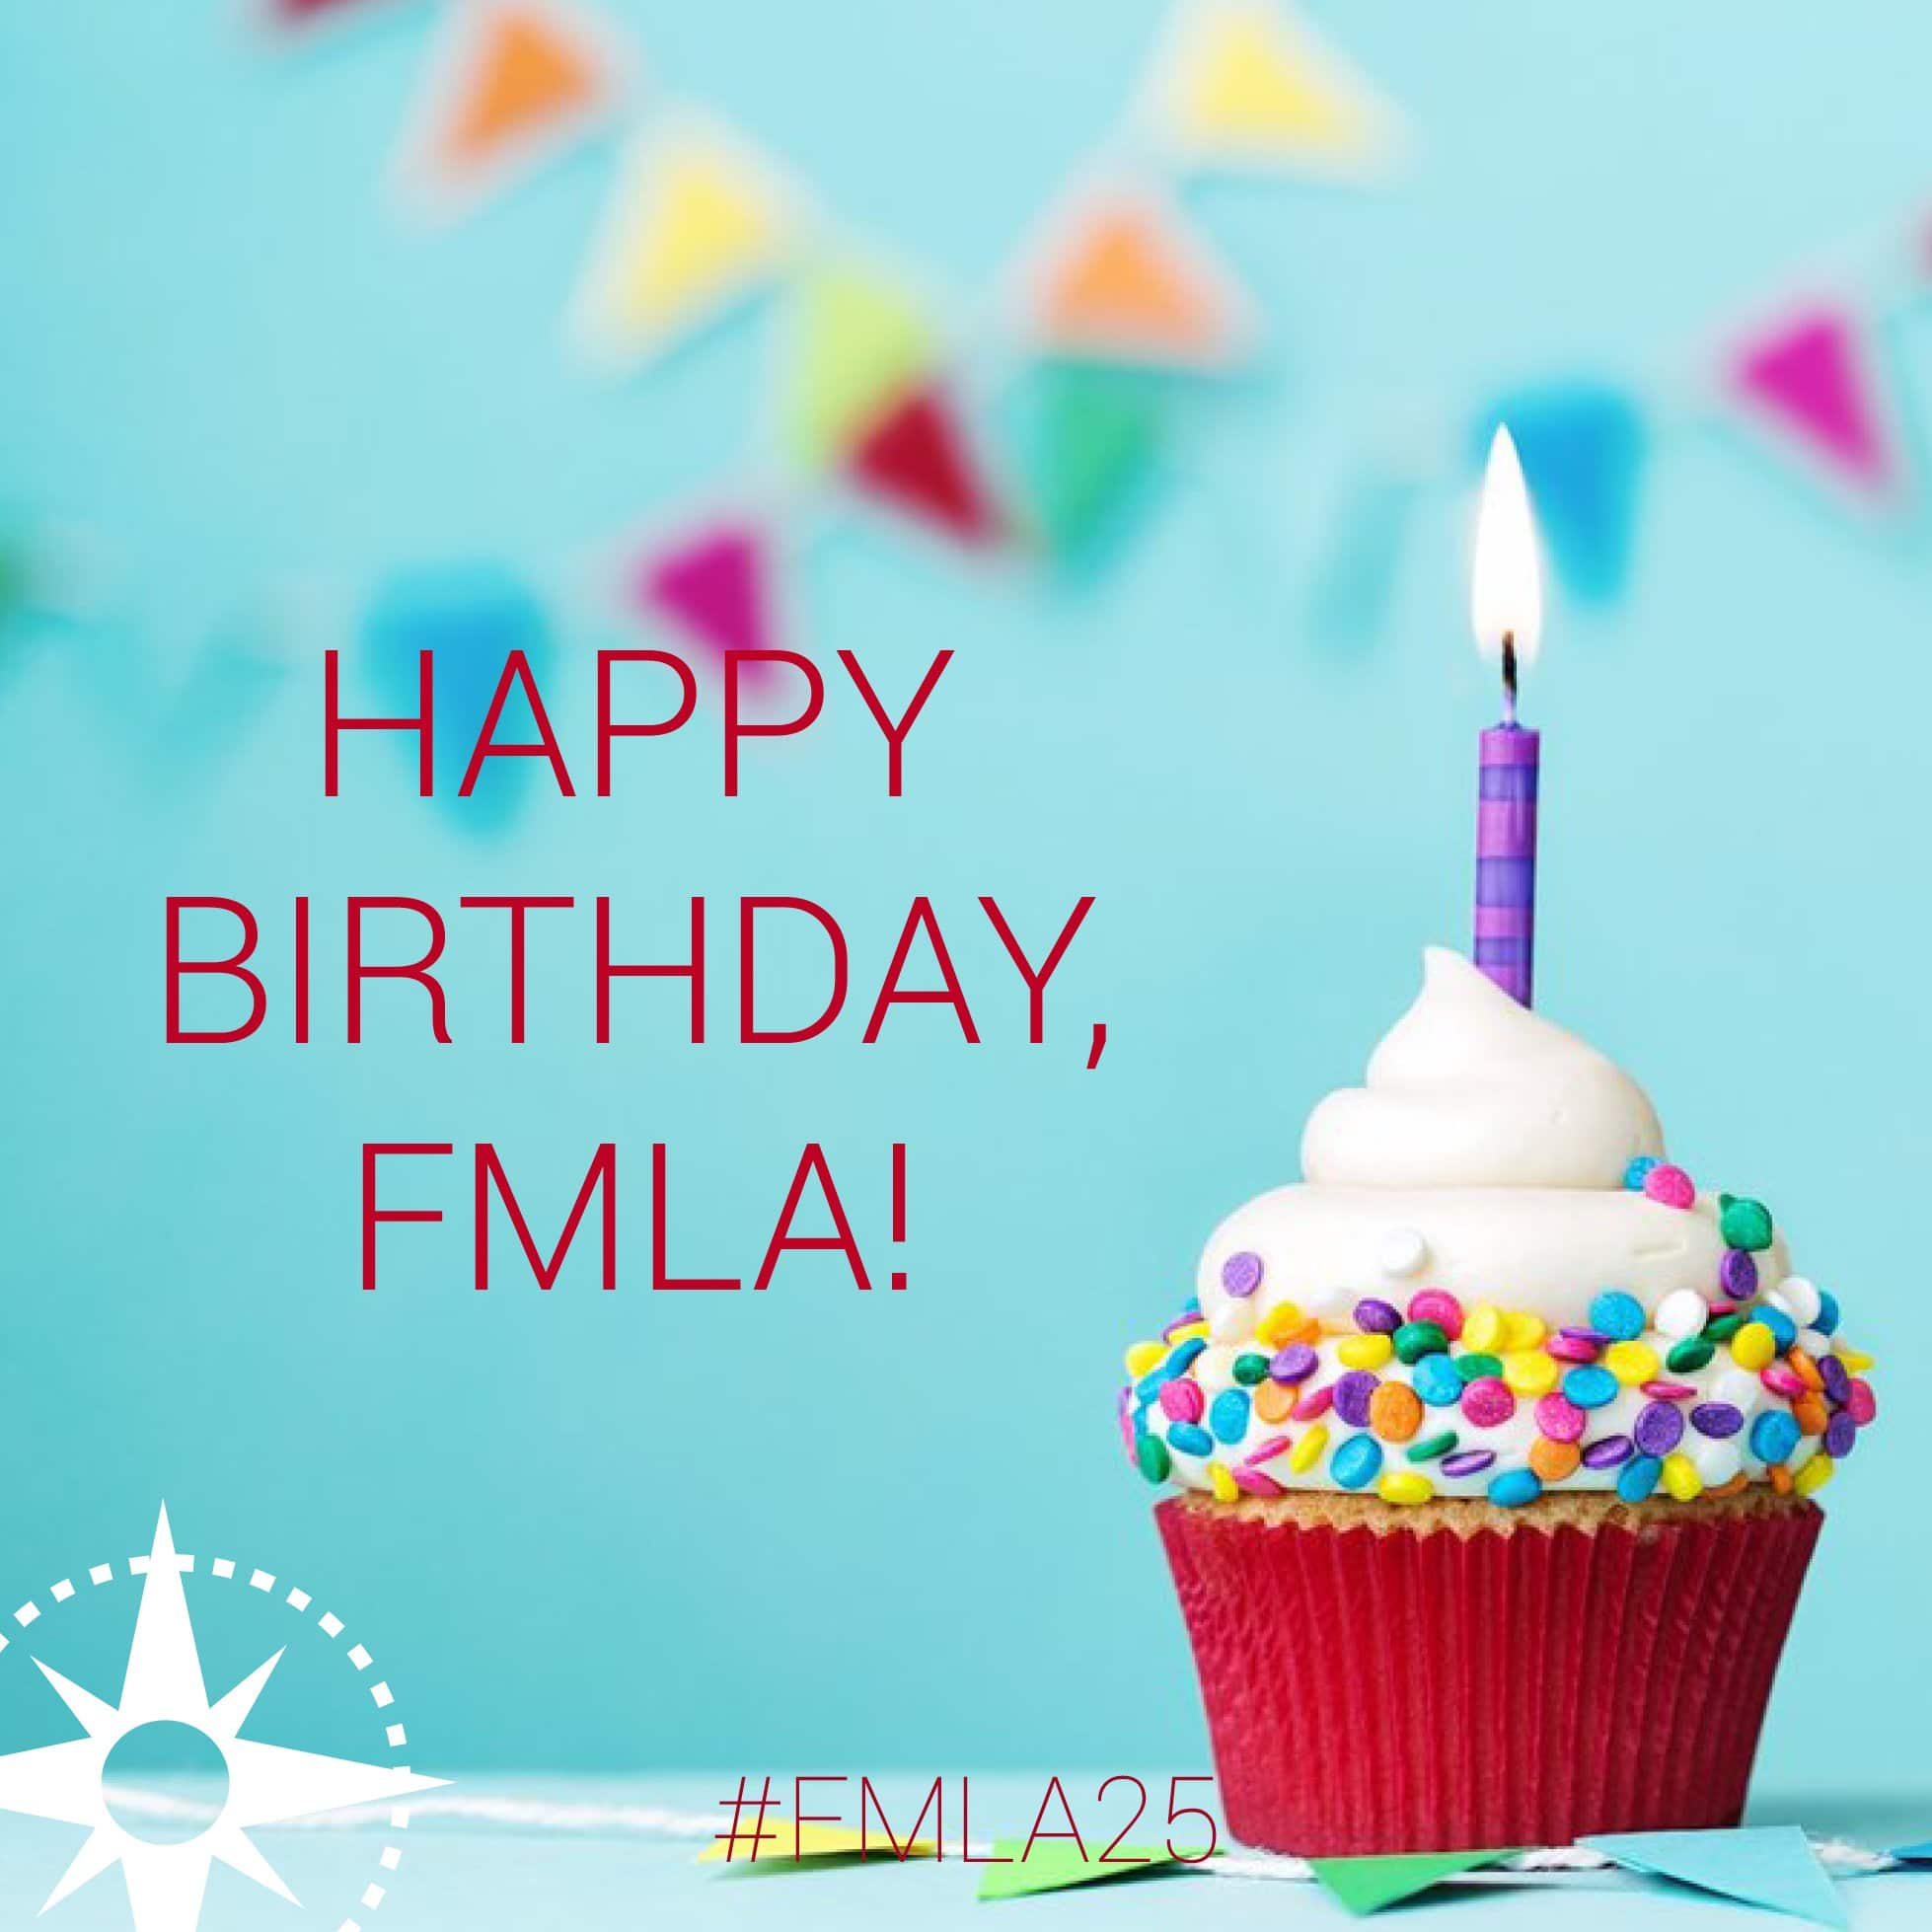 Happy 25th Birthday Fmla 25 Years Later Where Are We Now 21st